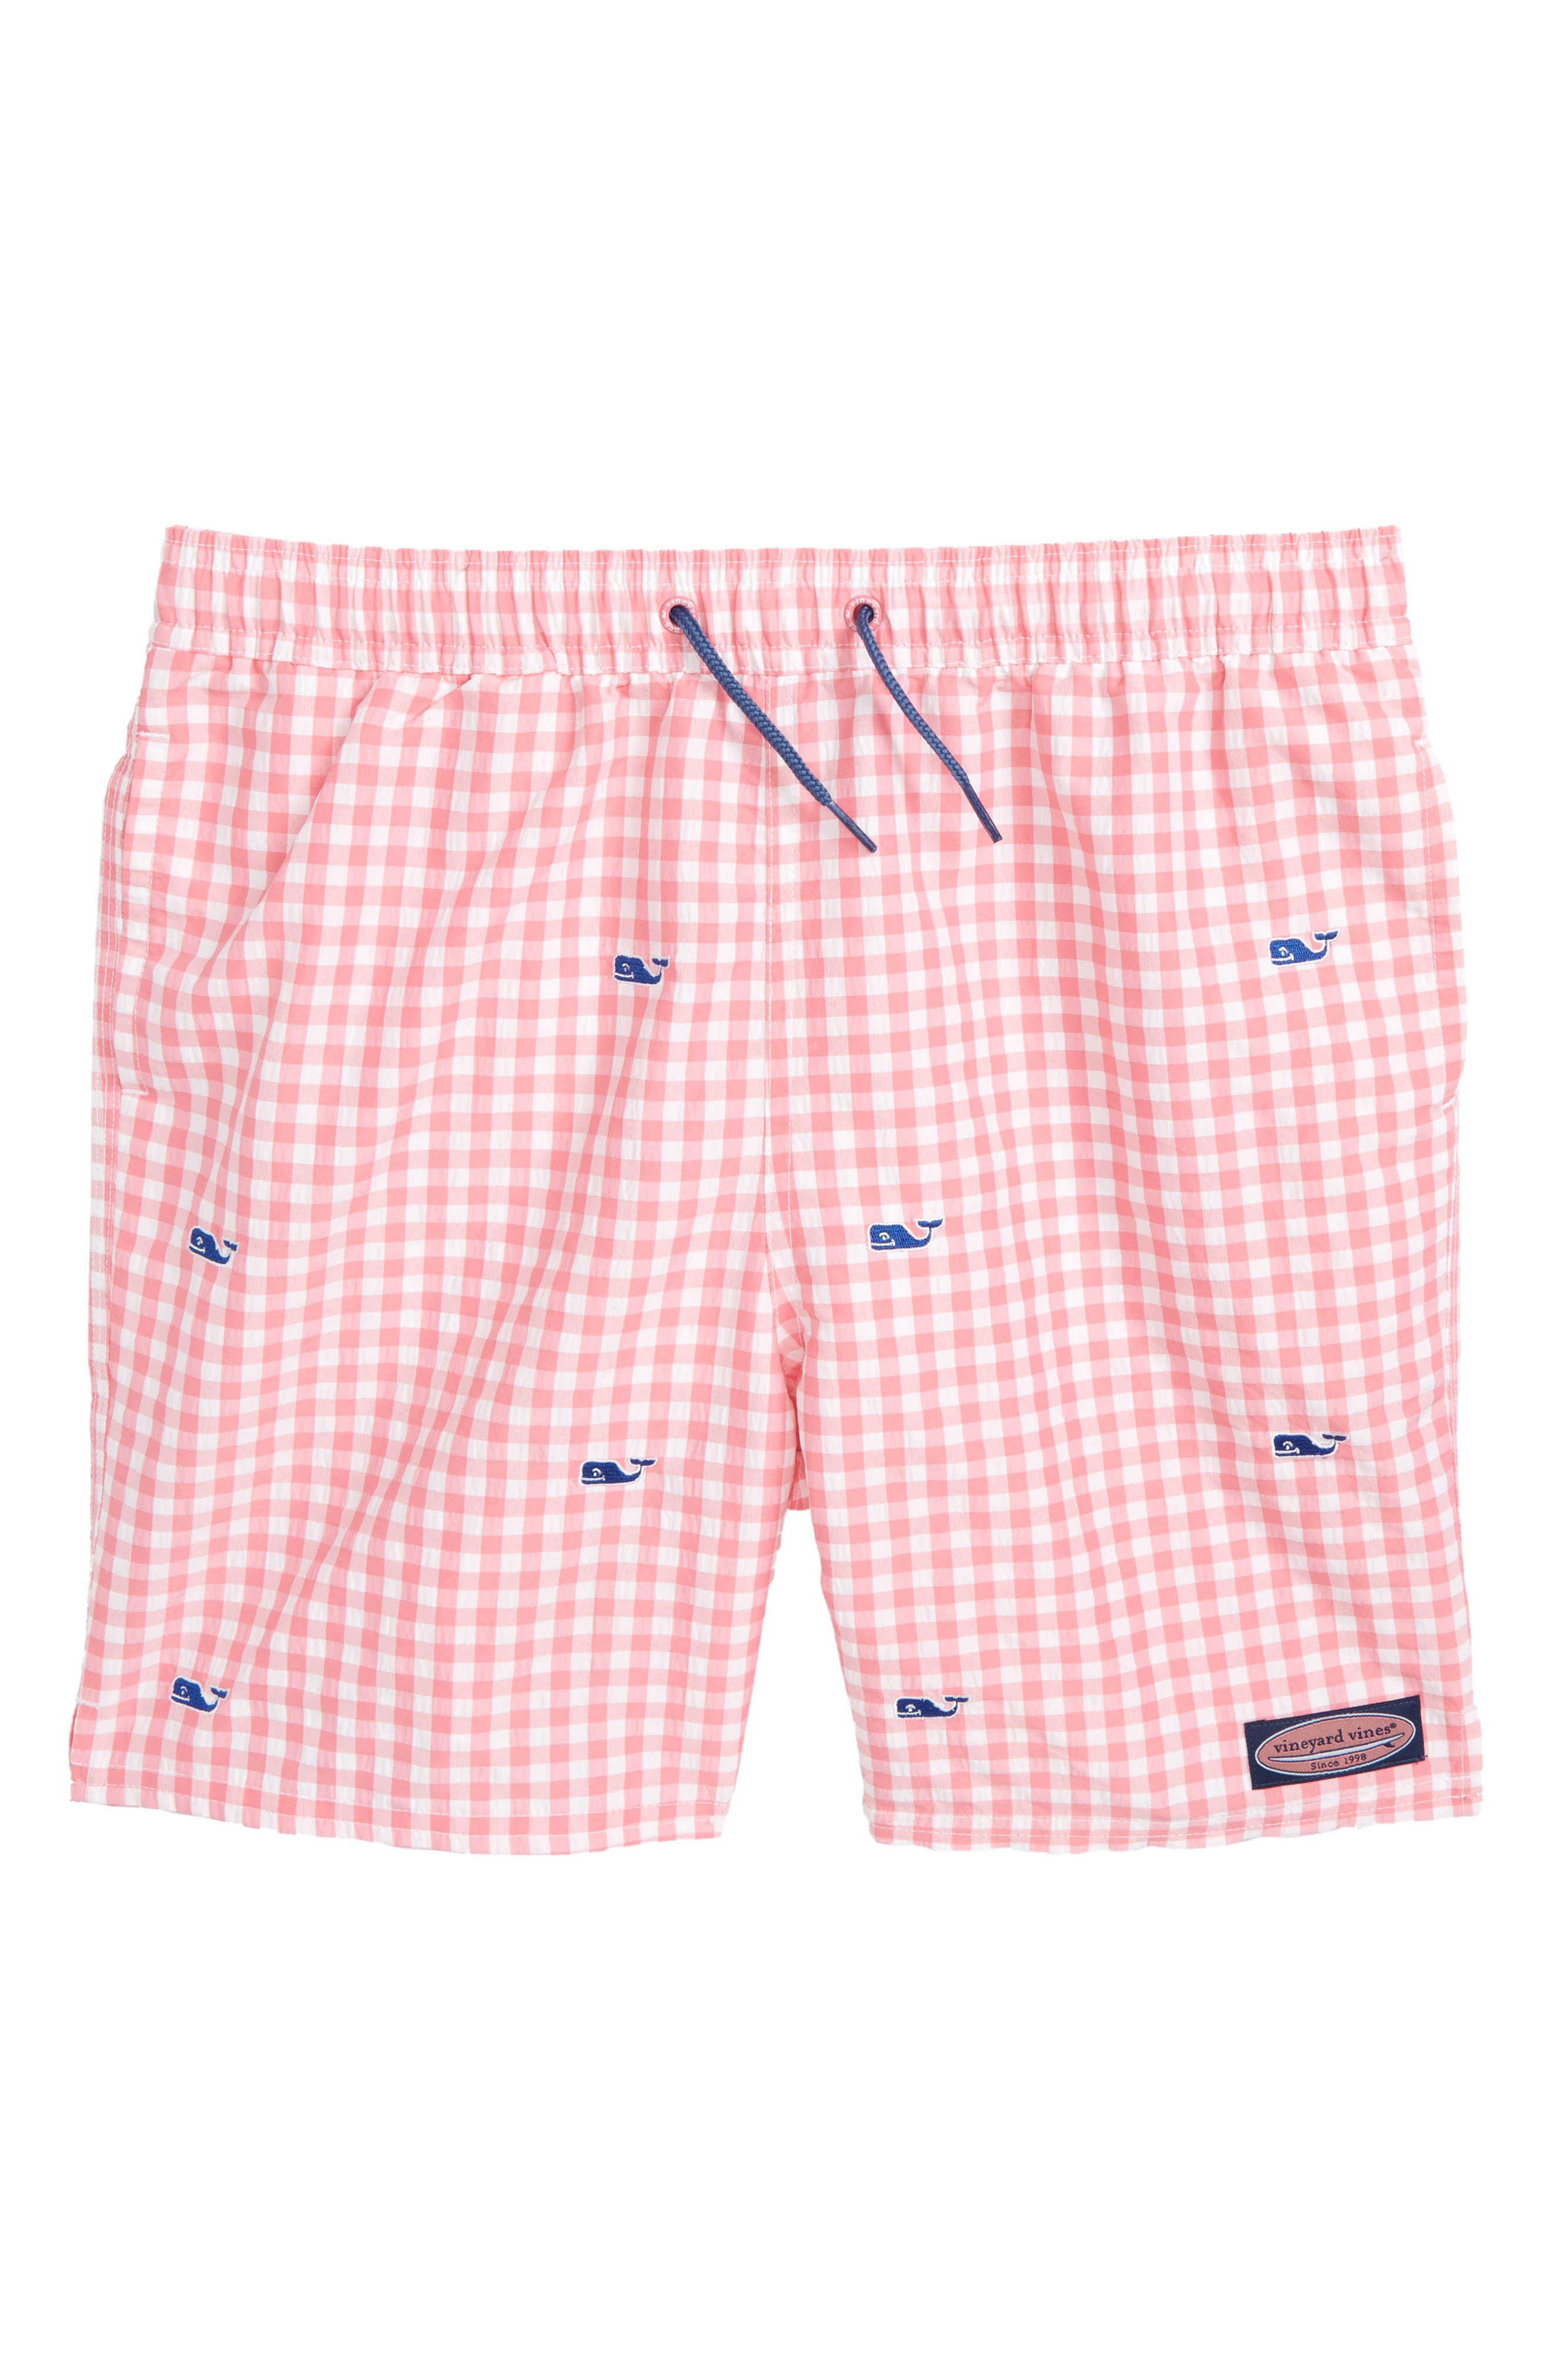 Embroidered Micro Gingham Check Swim Trunks,                             Main thumbnail 1, color,                             400